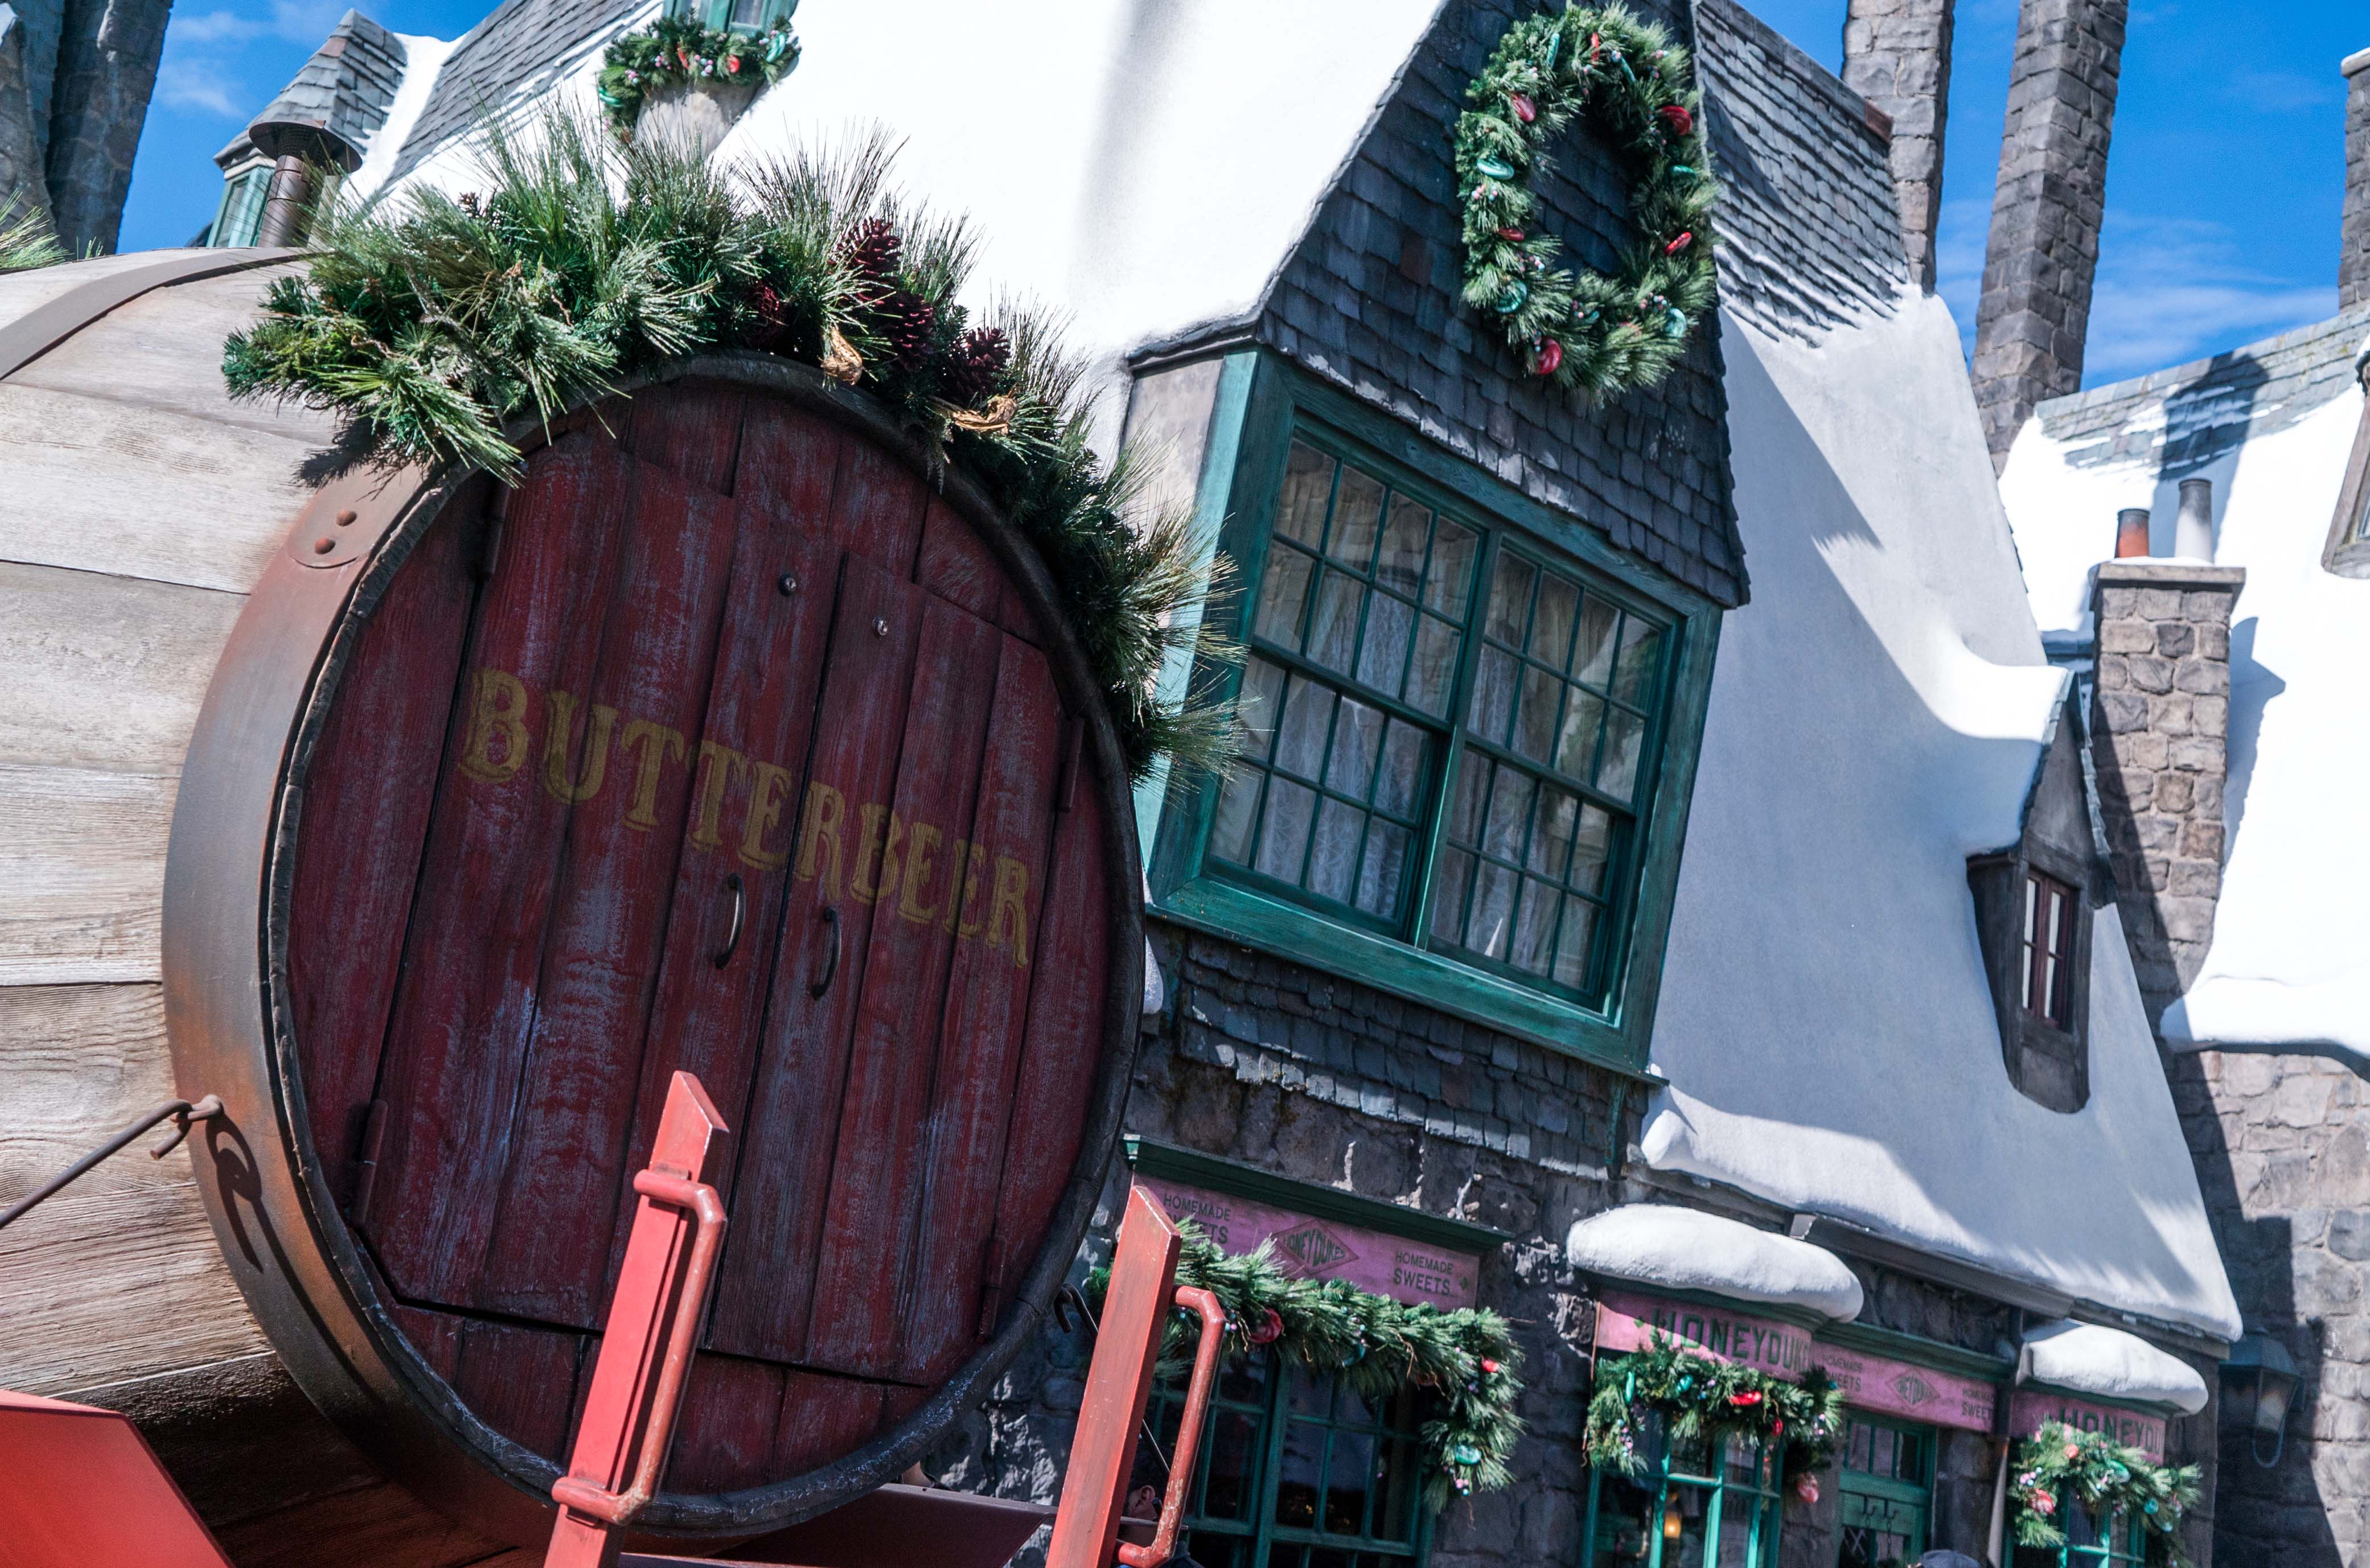 christmas in the wizarding world of harry potter decor at universal studios hollywood